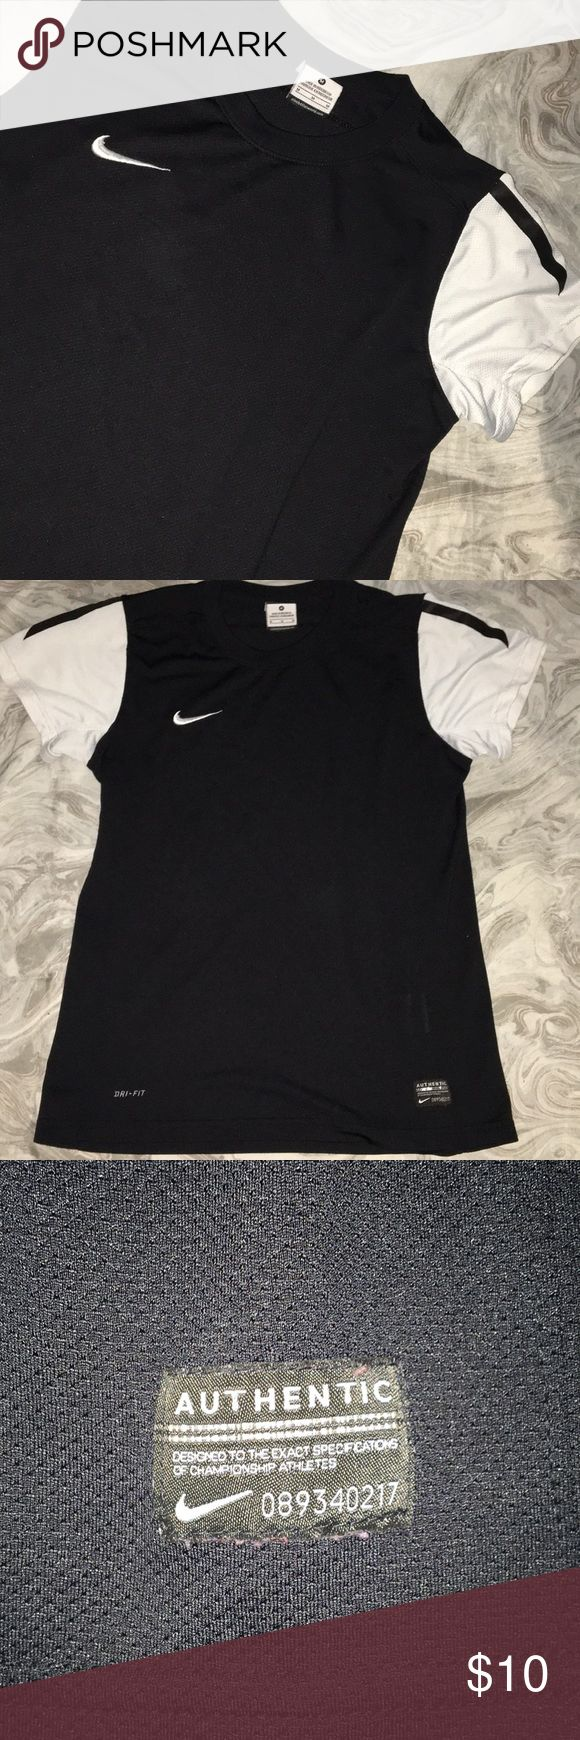 Nike workout shirt I think it might be for guys but it's super cute and comfy Nike Tops Tees - Short Sleeve